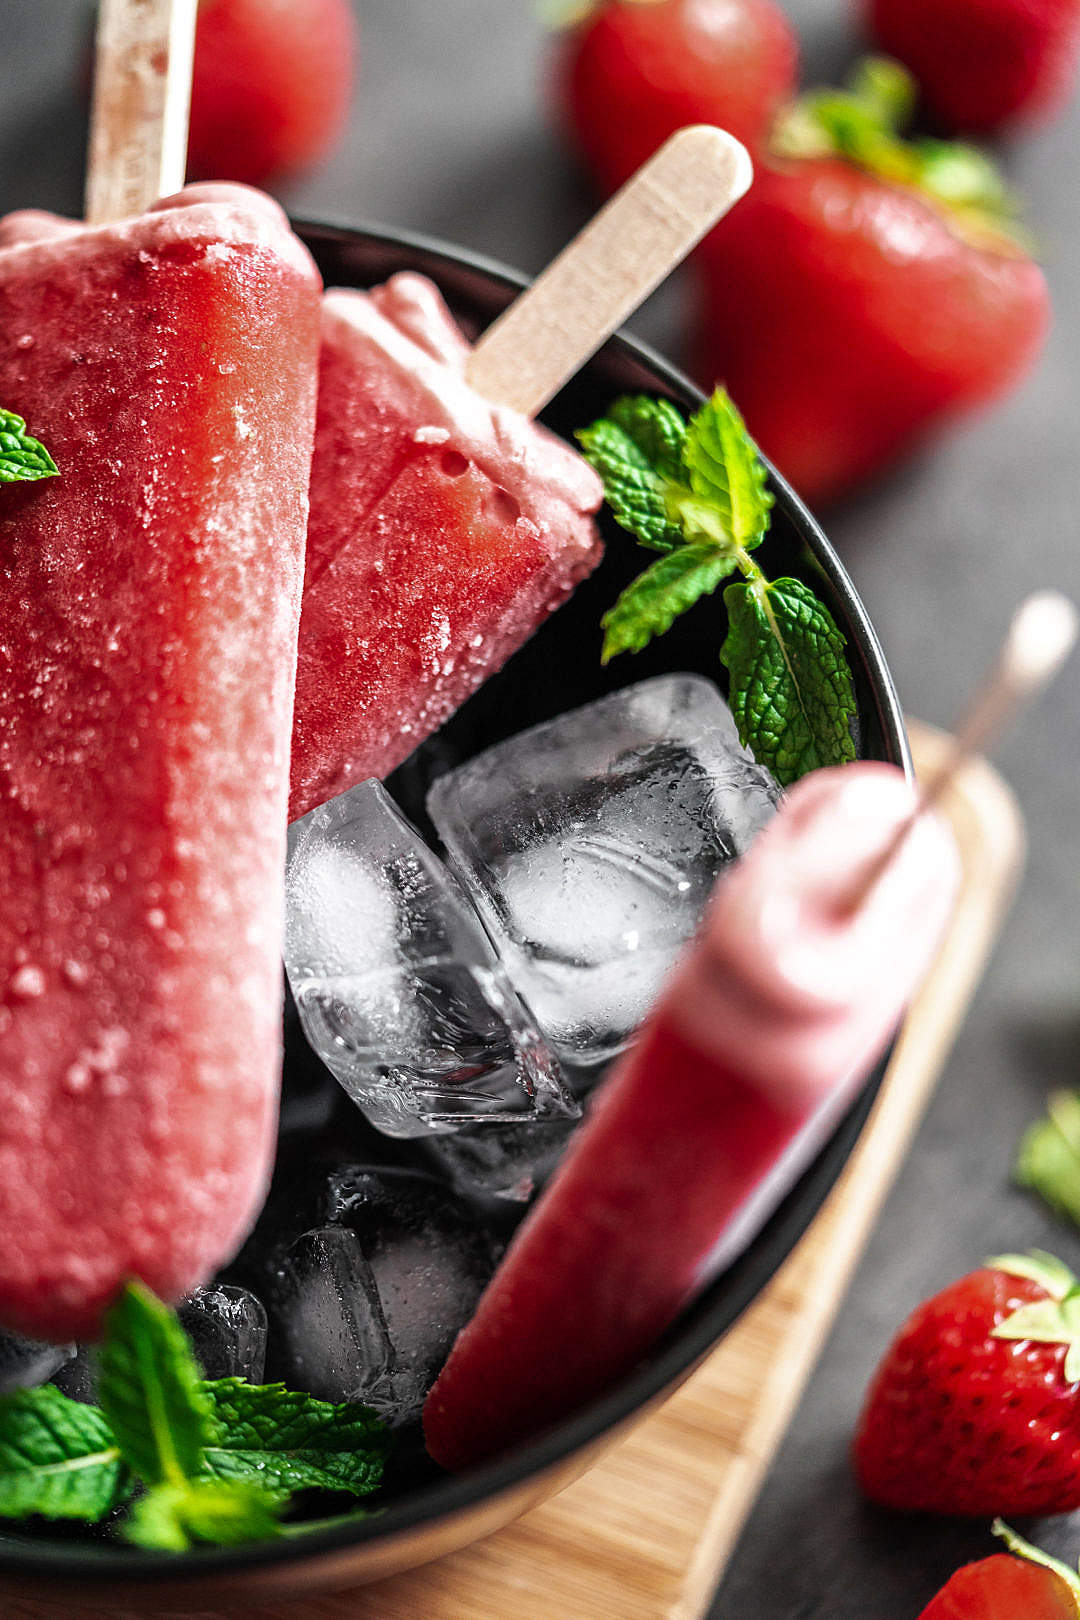 Download Strawberry Ice Lollies in a Black Bowl FREE Stock Photo